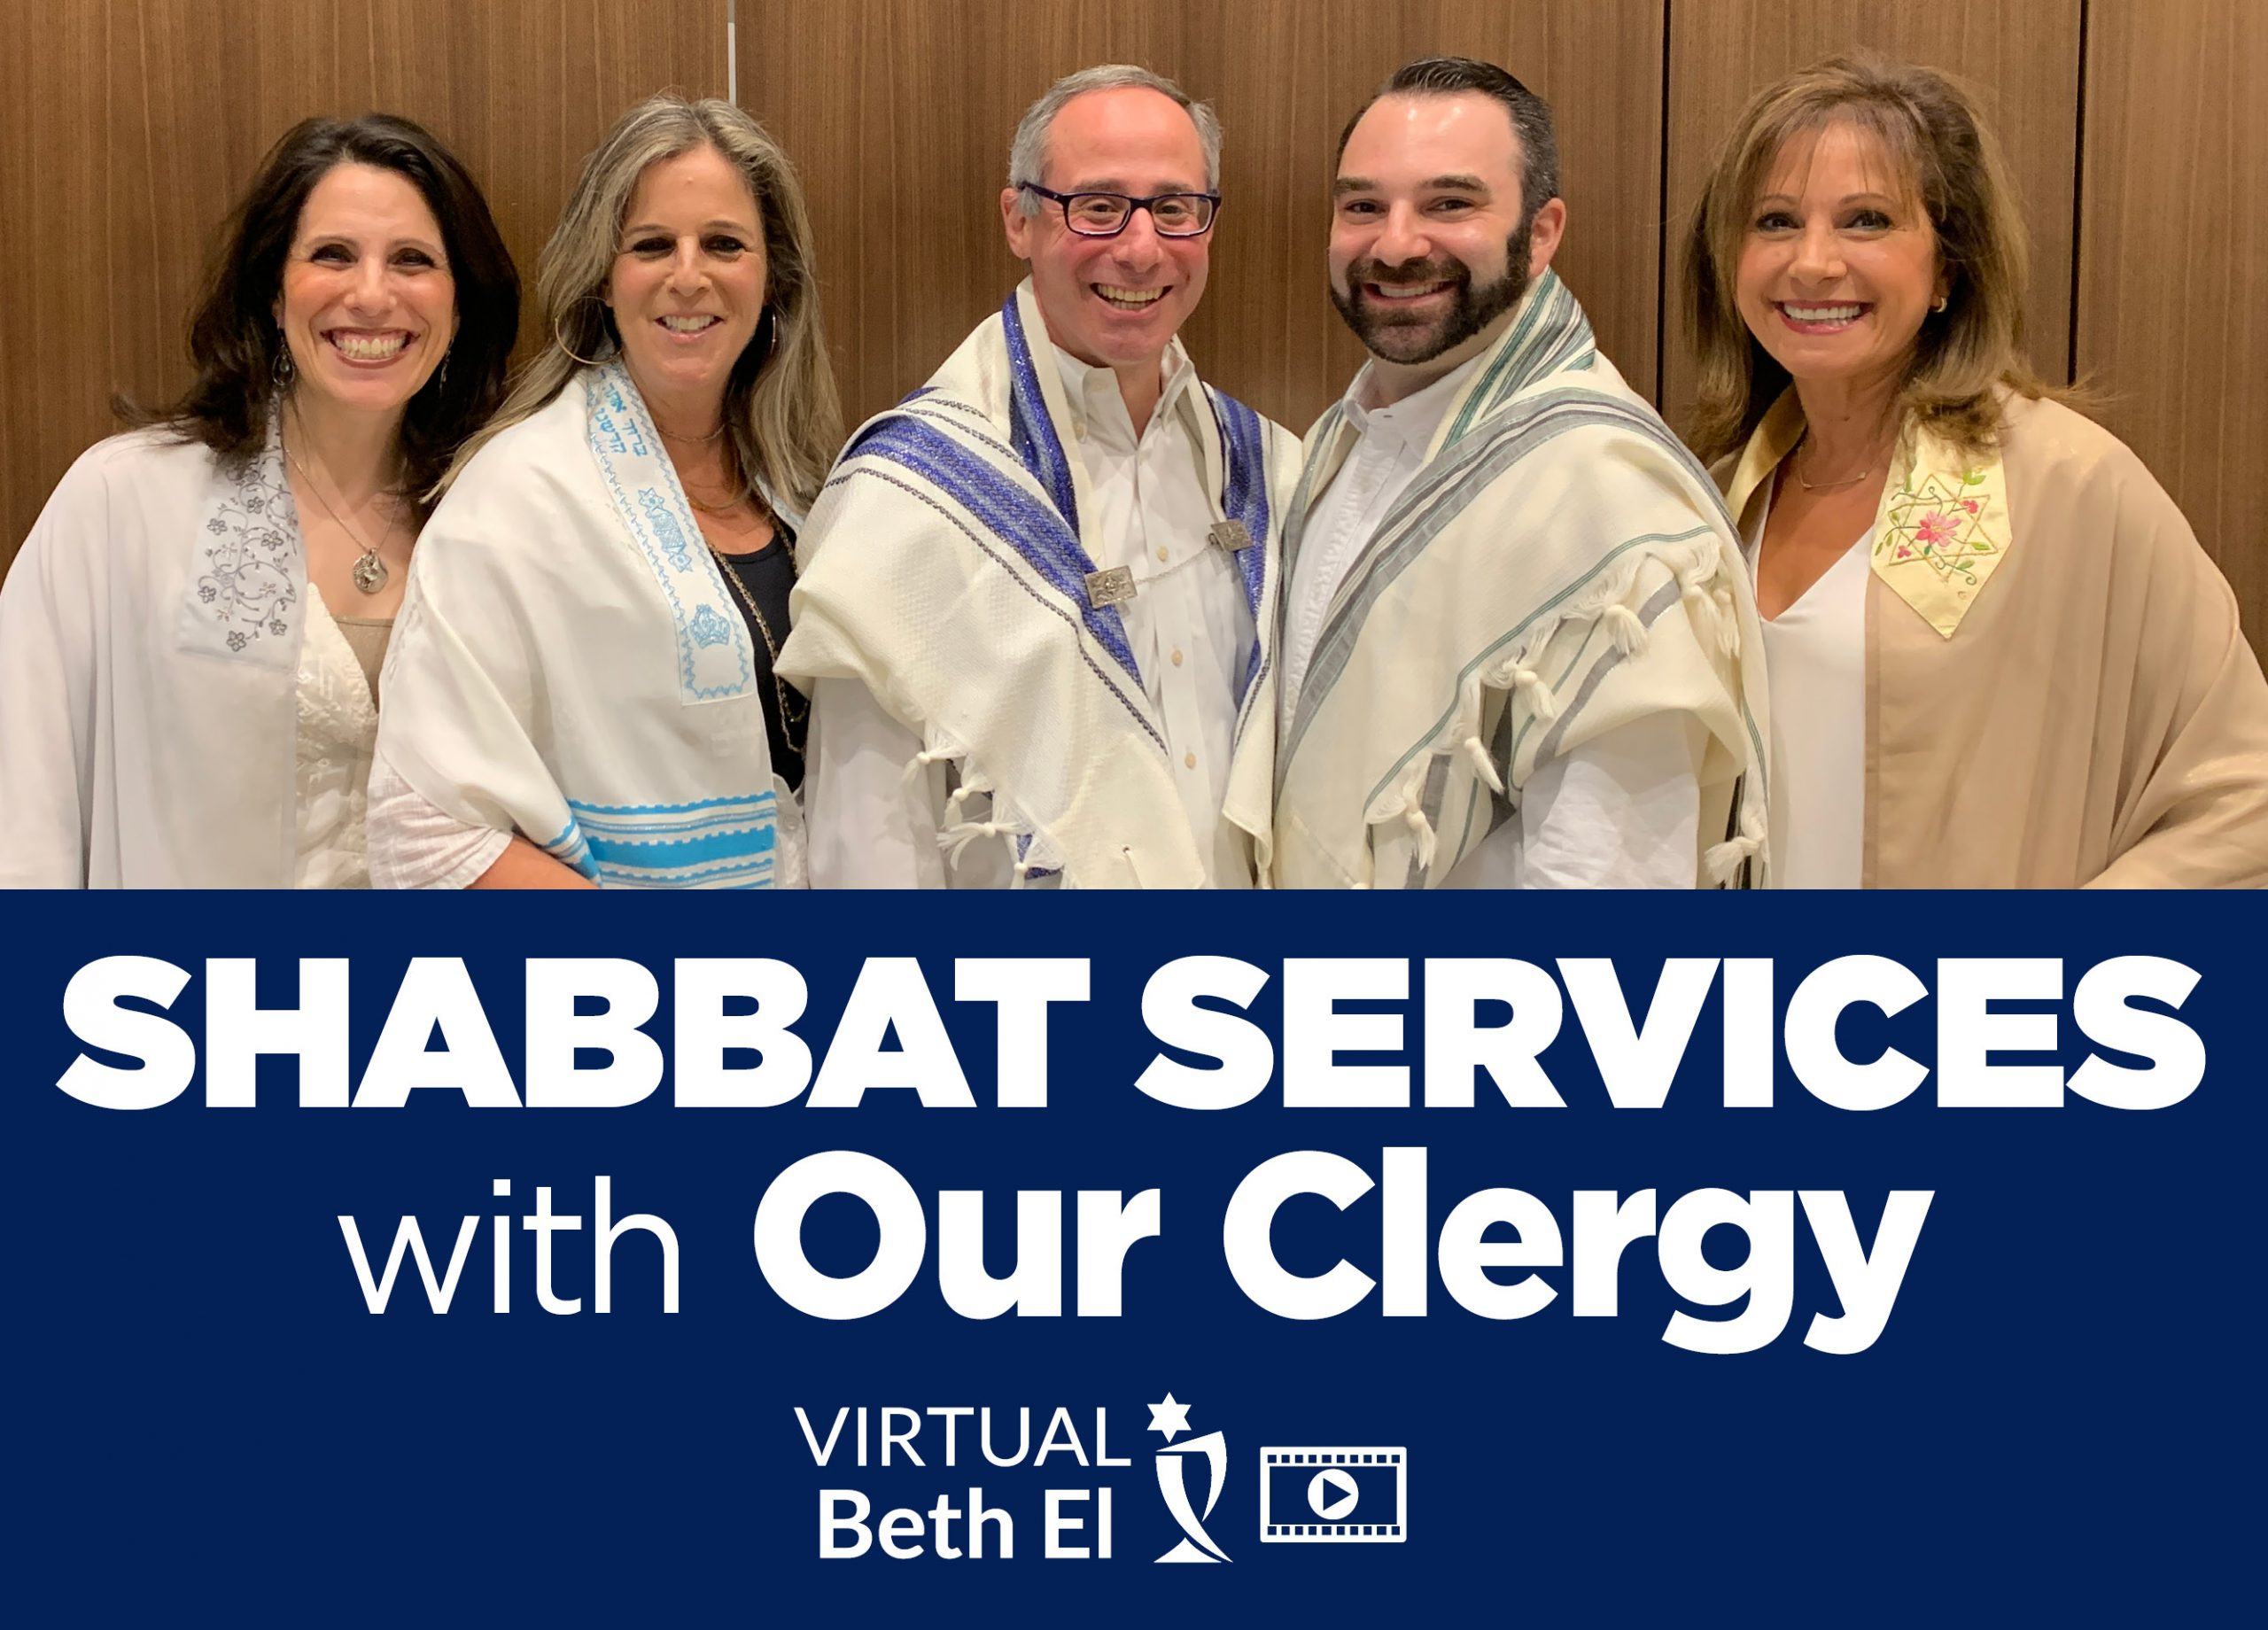 Shabbat Services with Temple Beth El Clergy, event graphic, noting that this is for virtual services via Live Stream